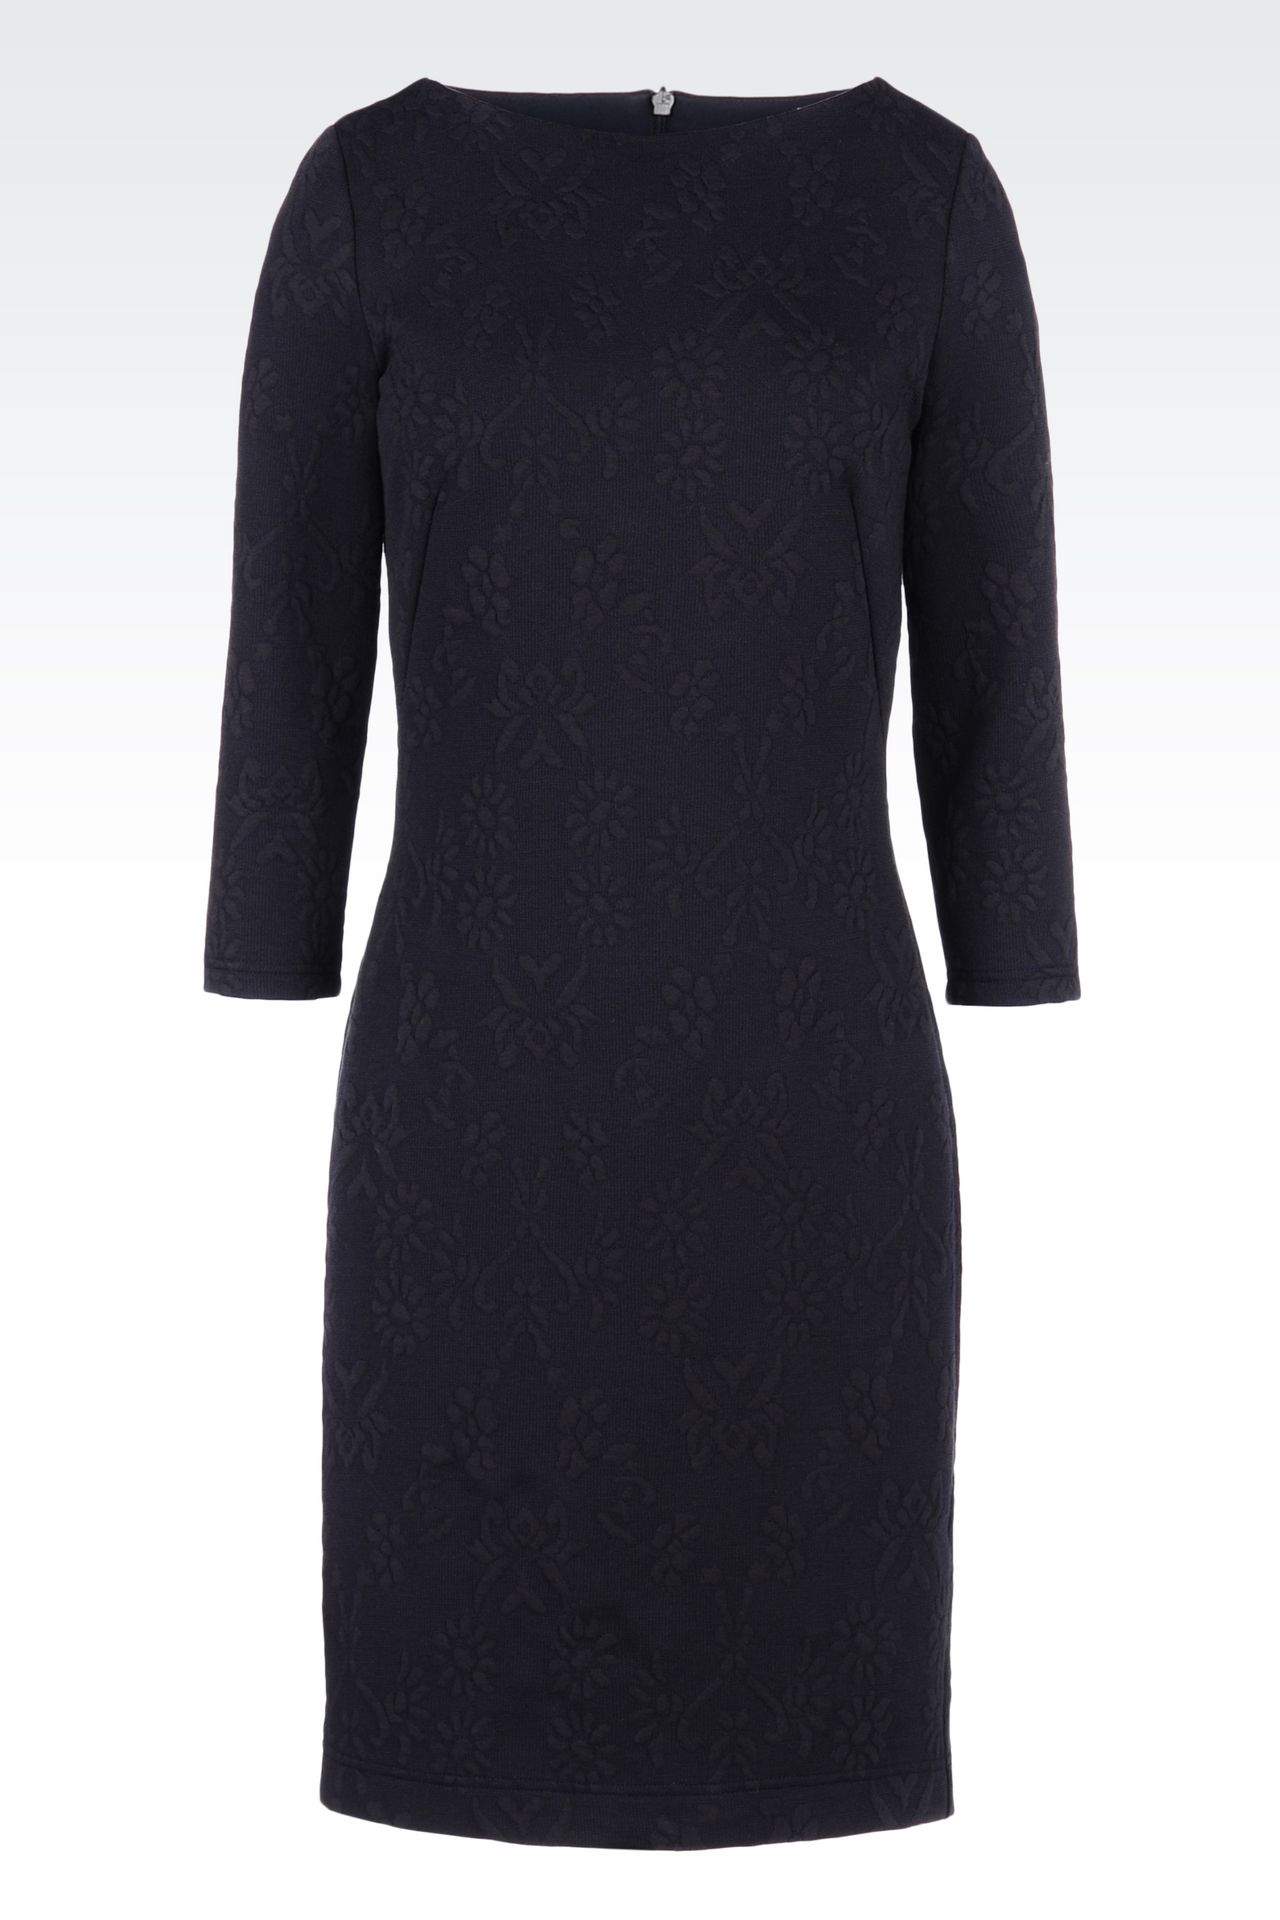 DRESS IN JACQUARD JERSEY: Long-sleeved dresses Women by Armani - 0